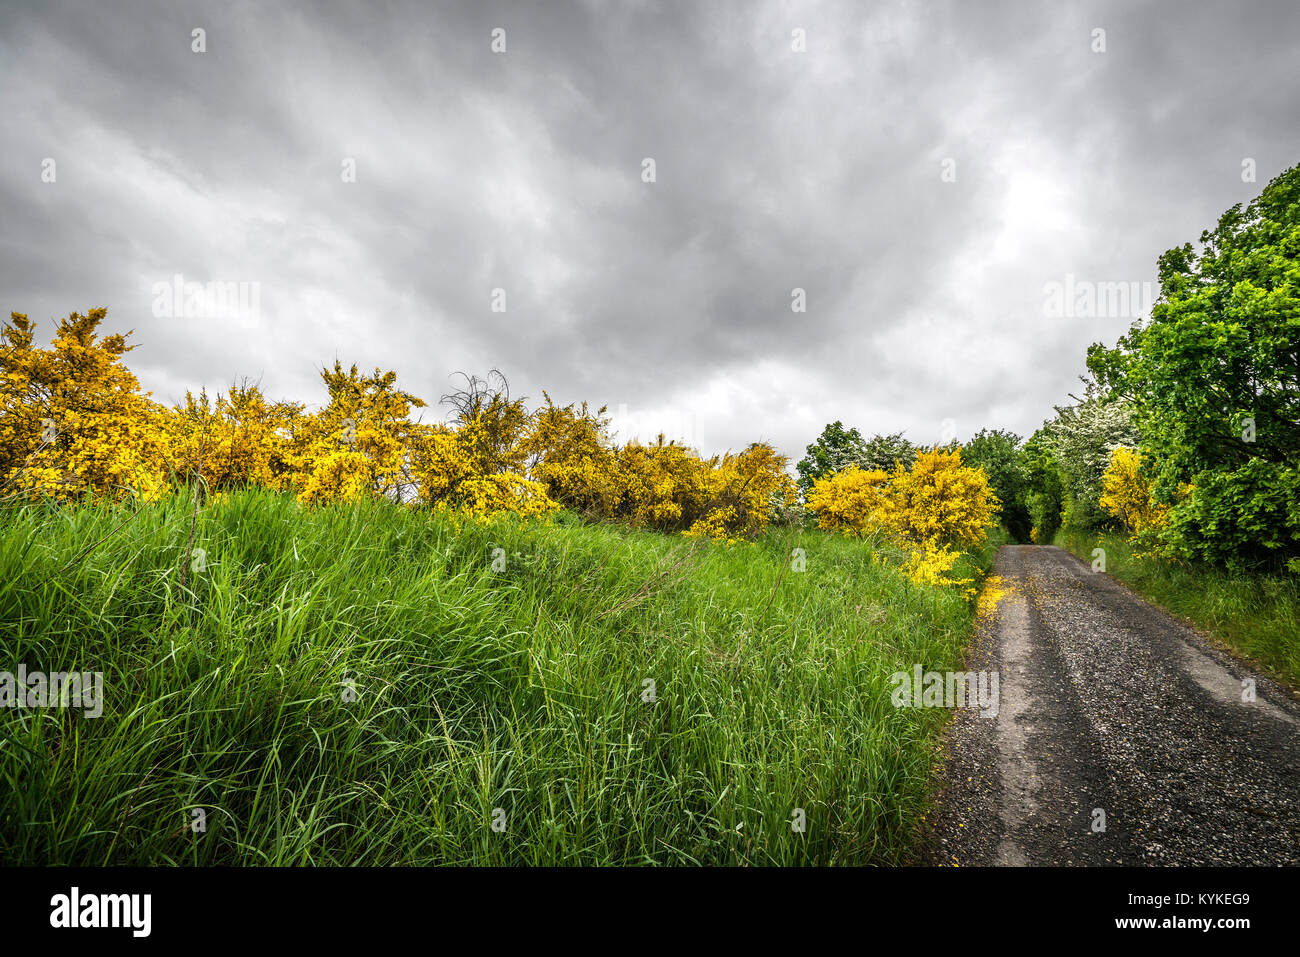 Yellow brrom bushes by a roadside in cloudy weather looking very vibrant in golden colors - Stock Image